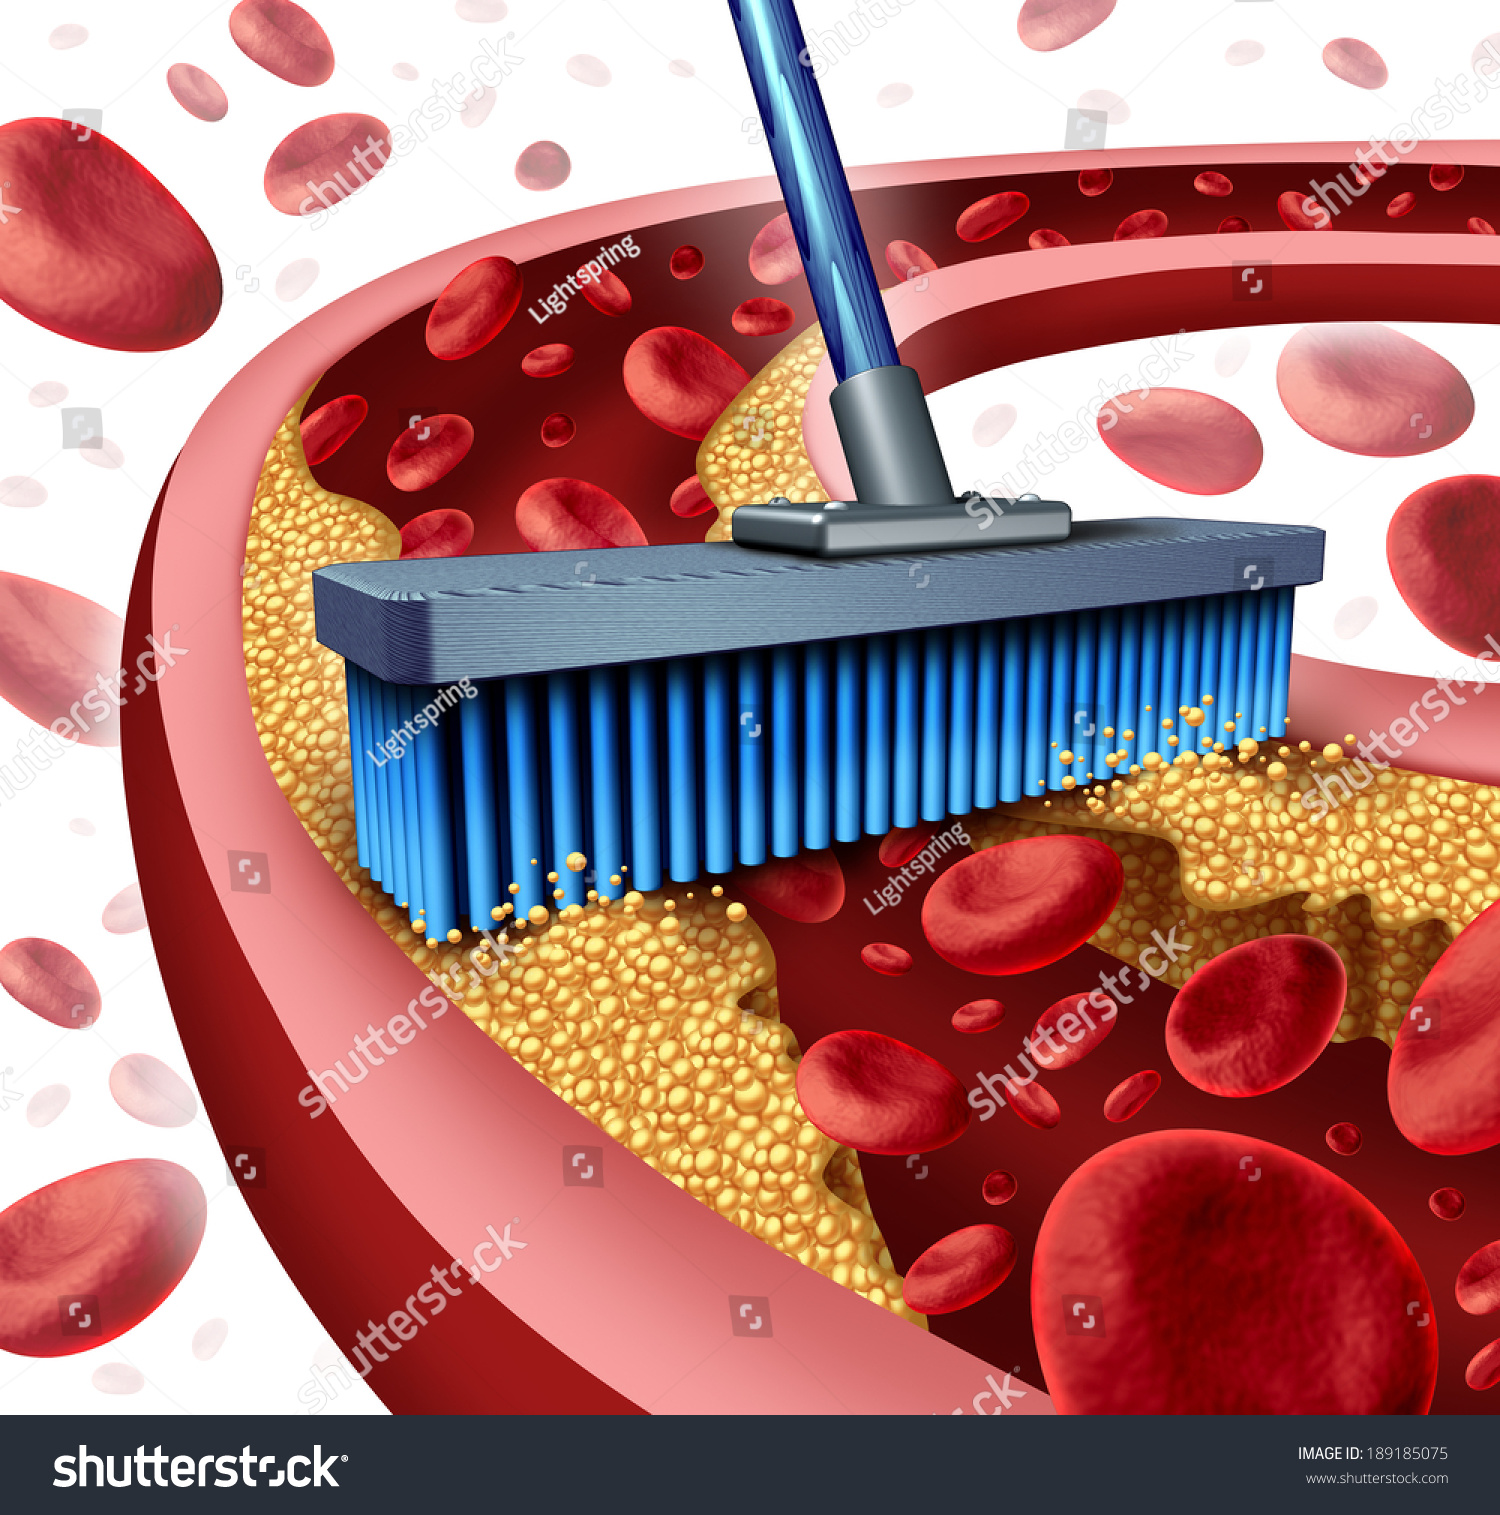 how to clean clogged arteries and blood vessels naturally